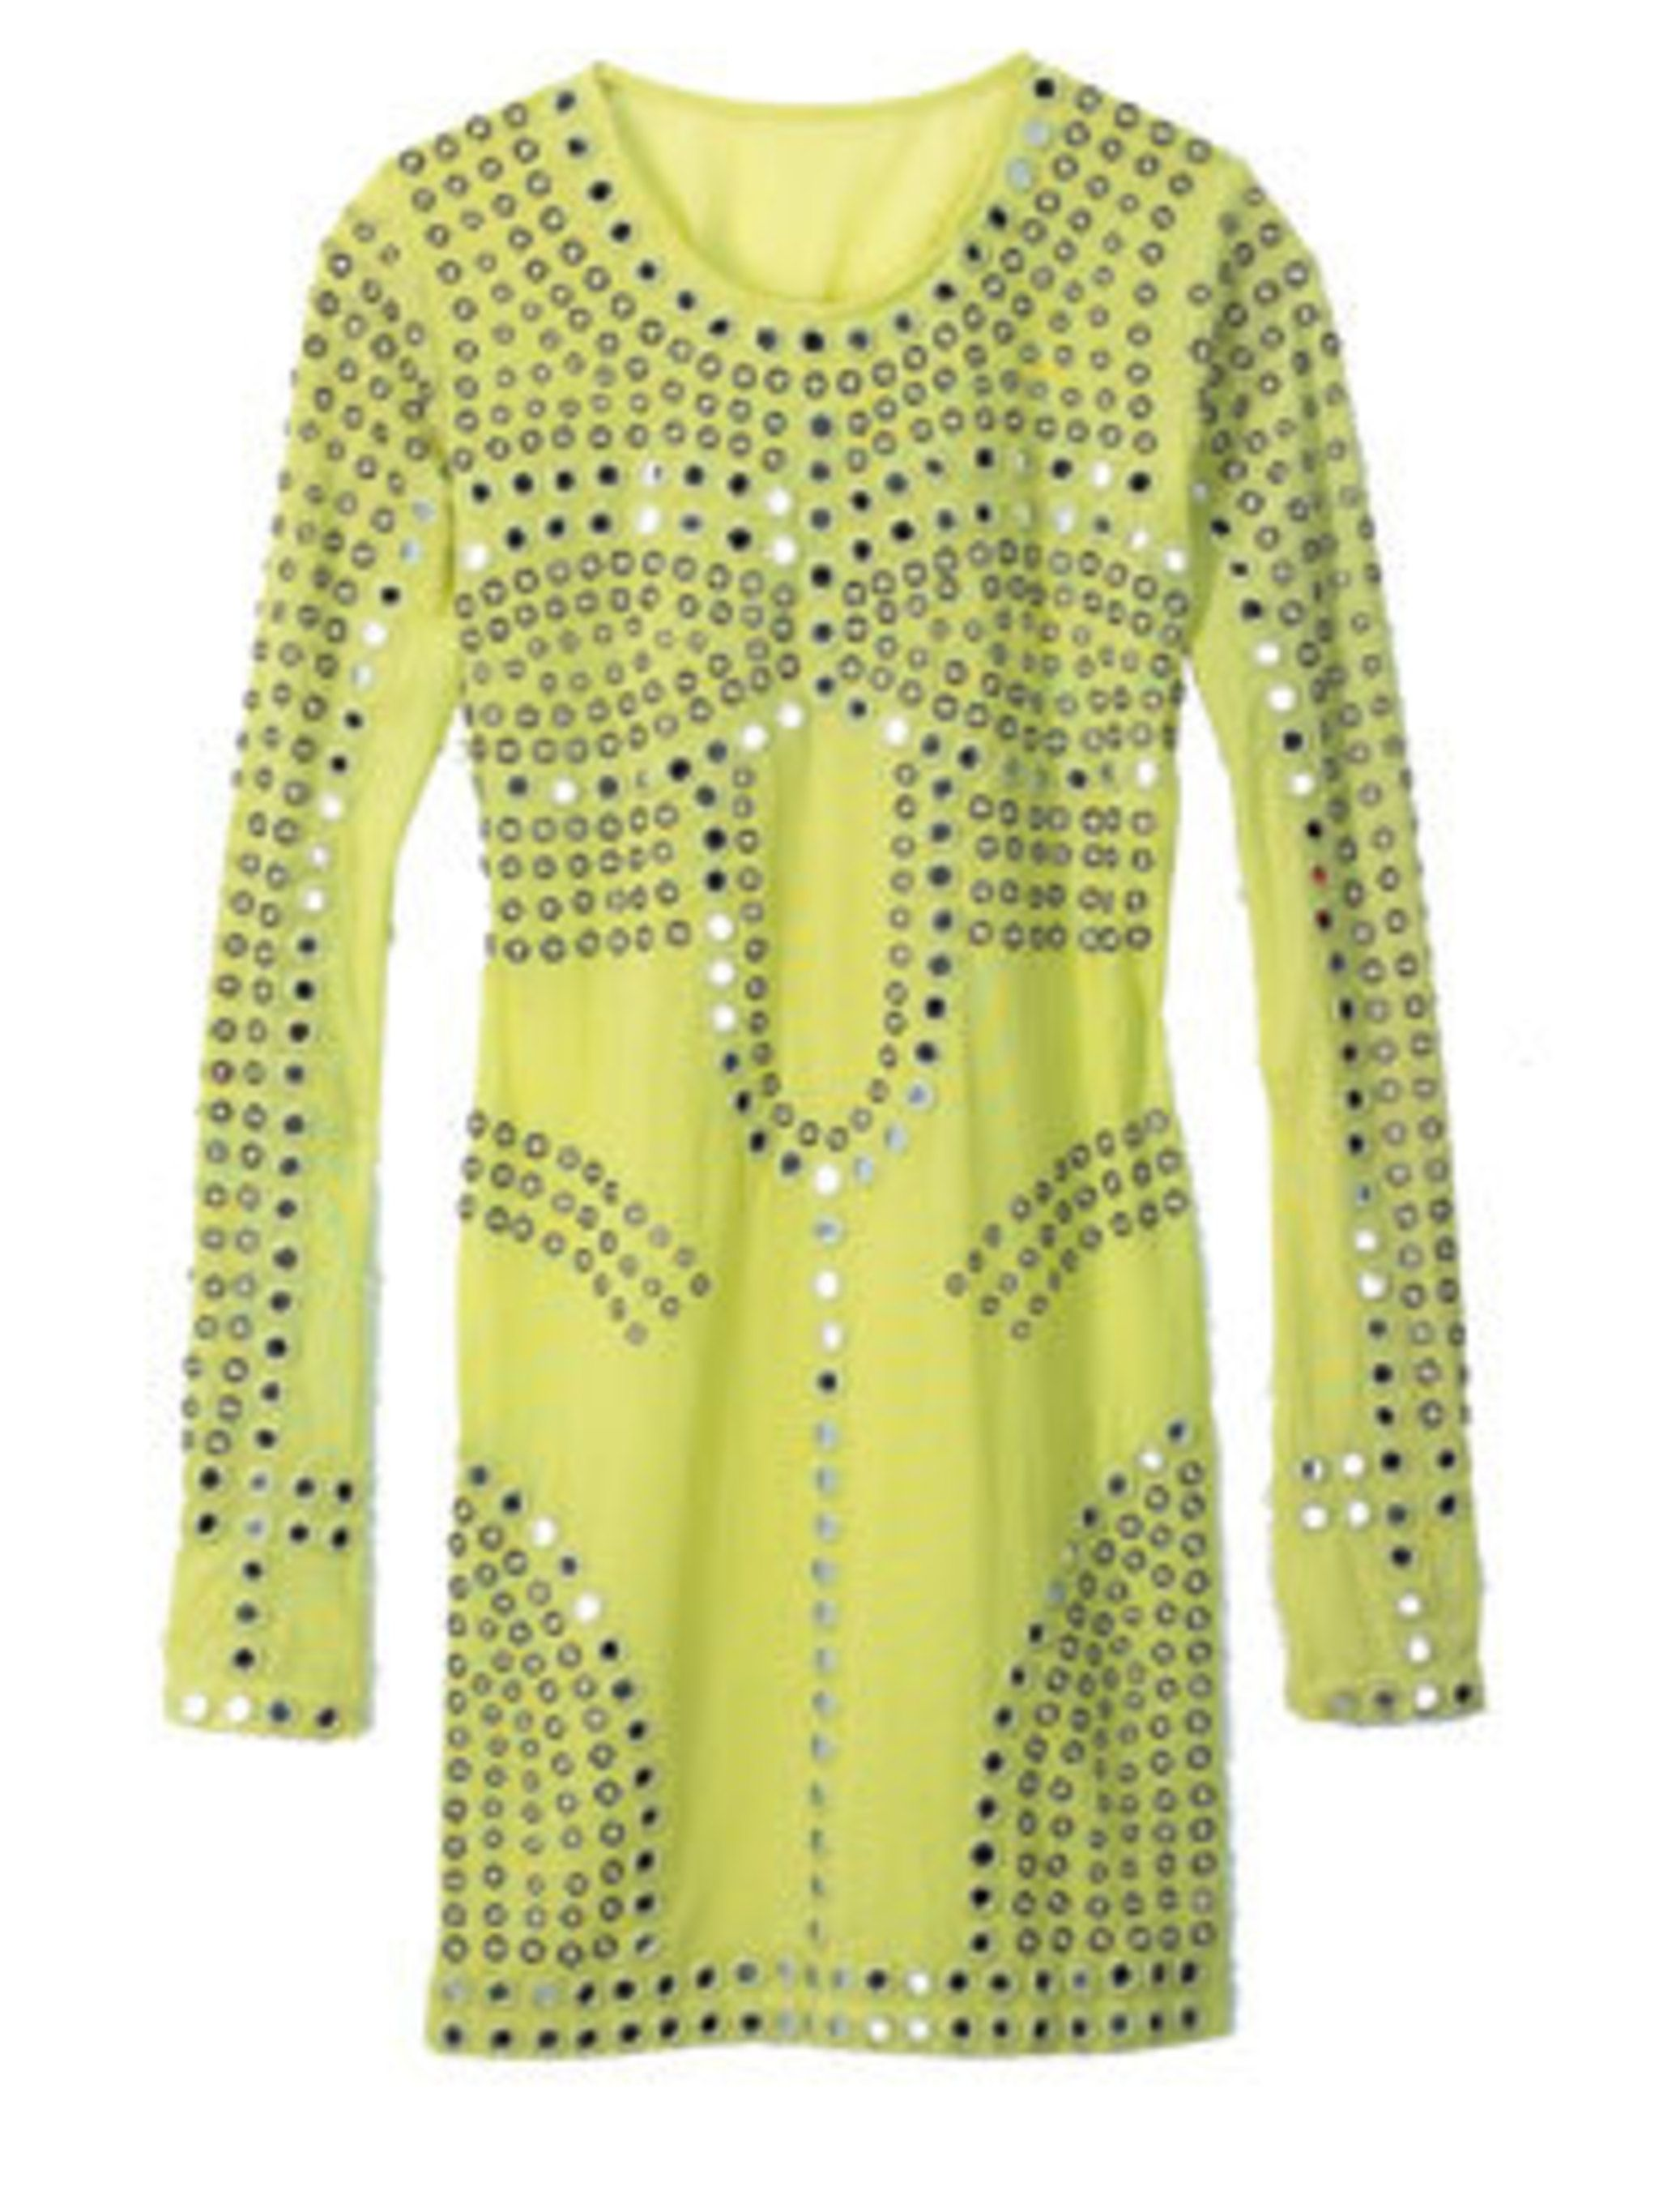 <p>Green dress, £125, by Christopher Kane for Topshop (0845 121 4519)</p>